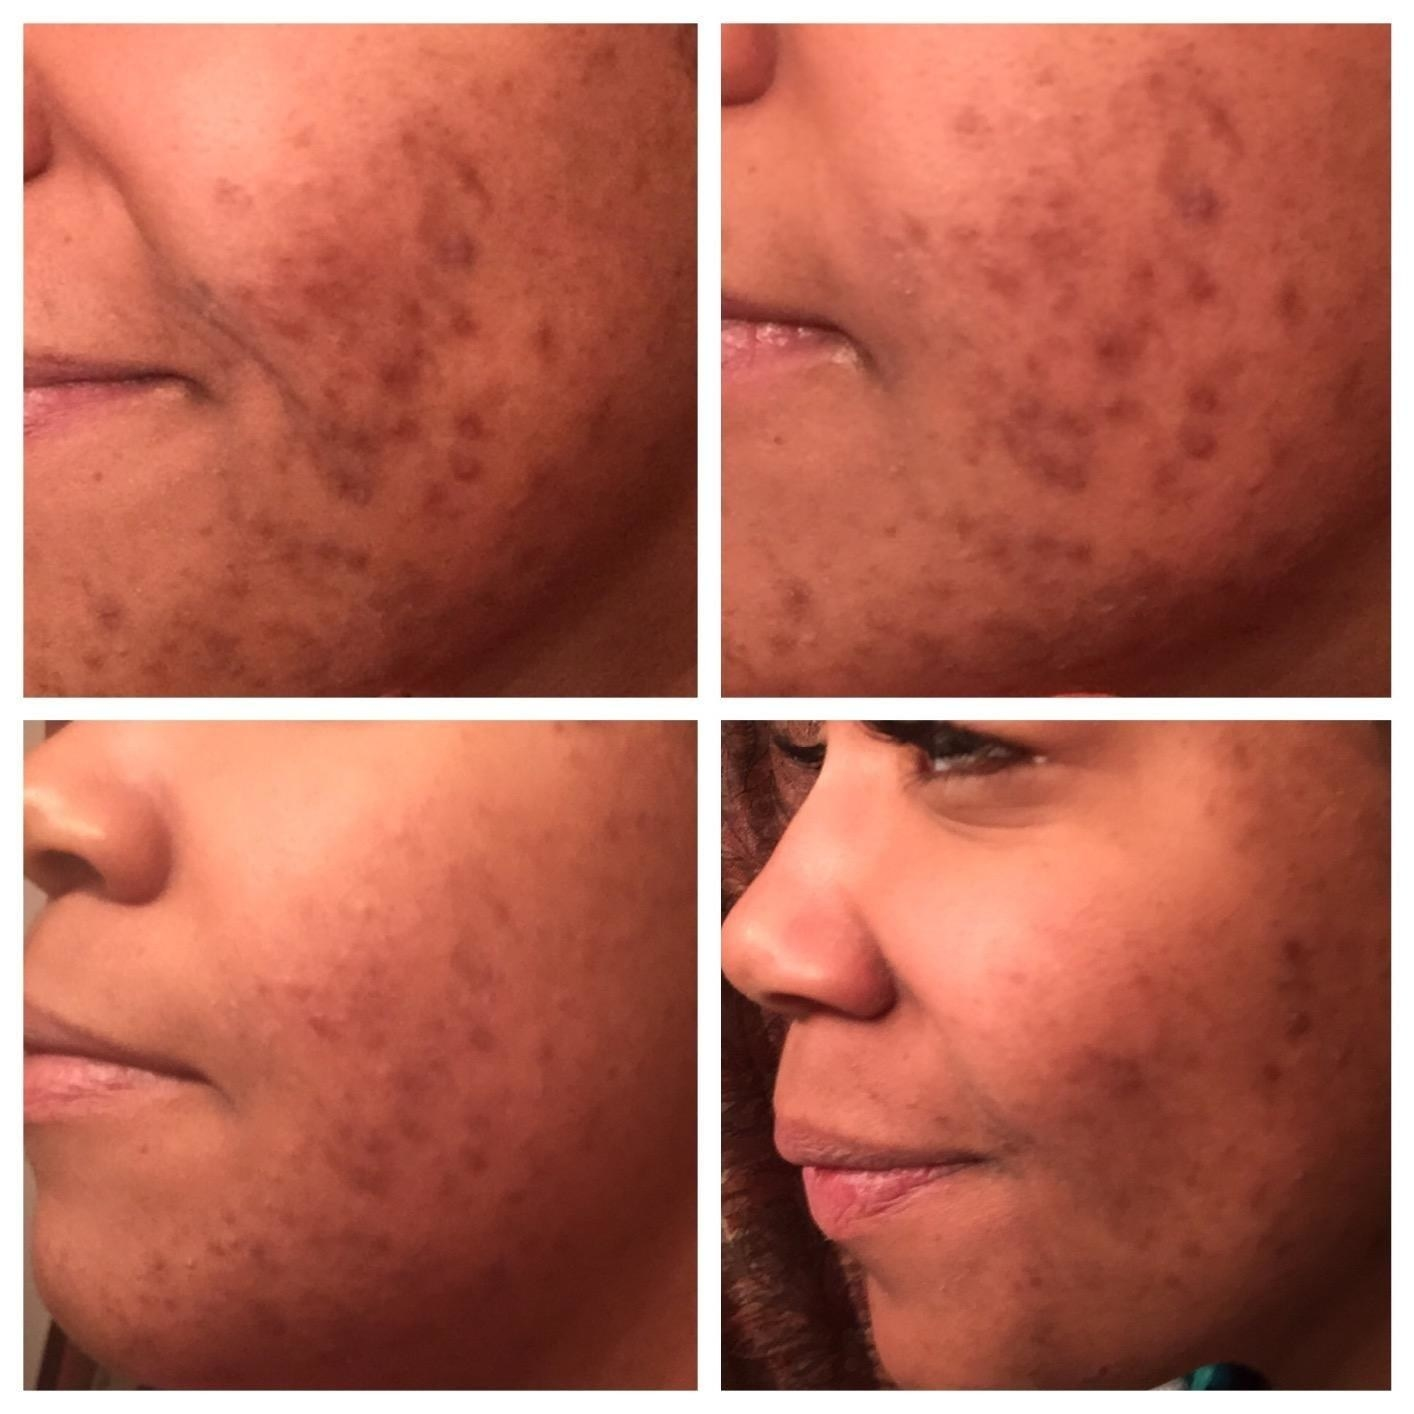 Reviewer's progression photos showing the oil significantly lightened their acne scars and evened their skin tone